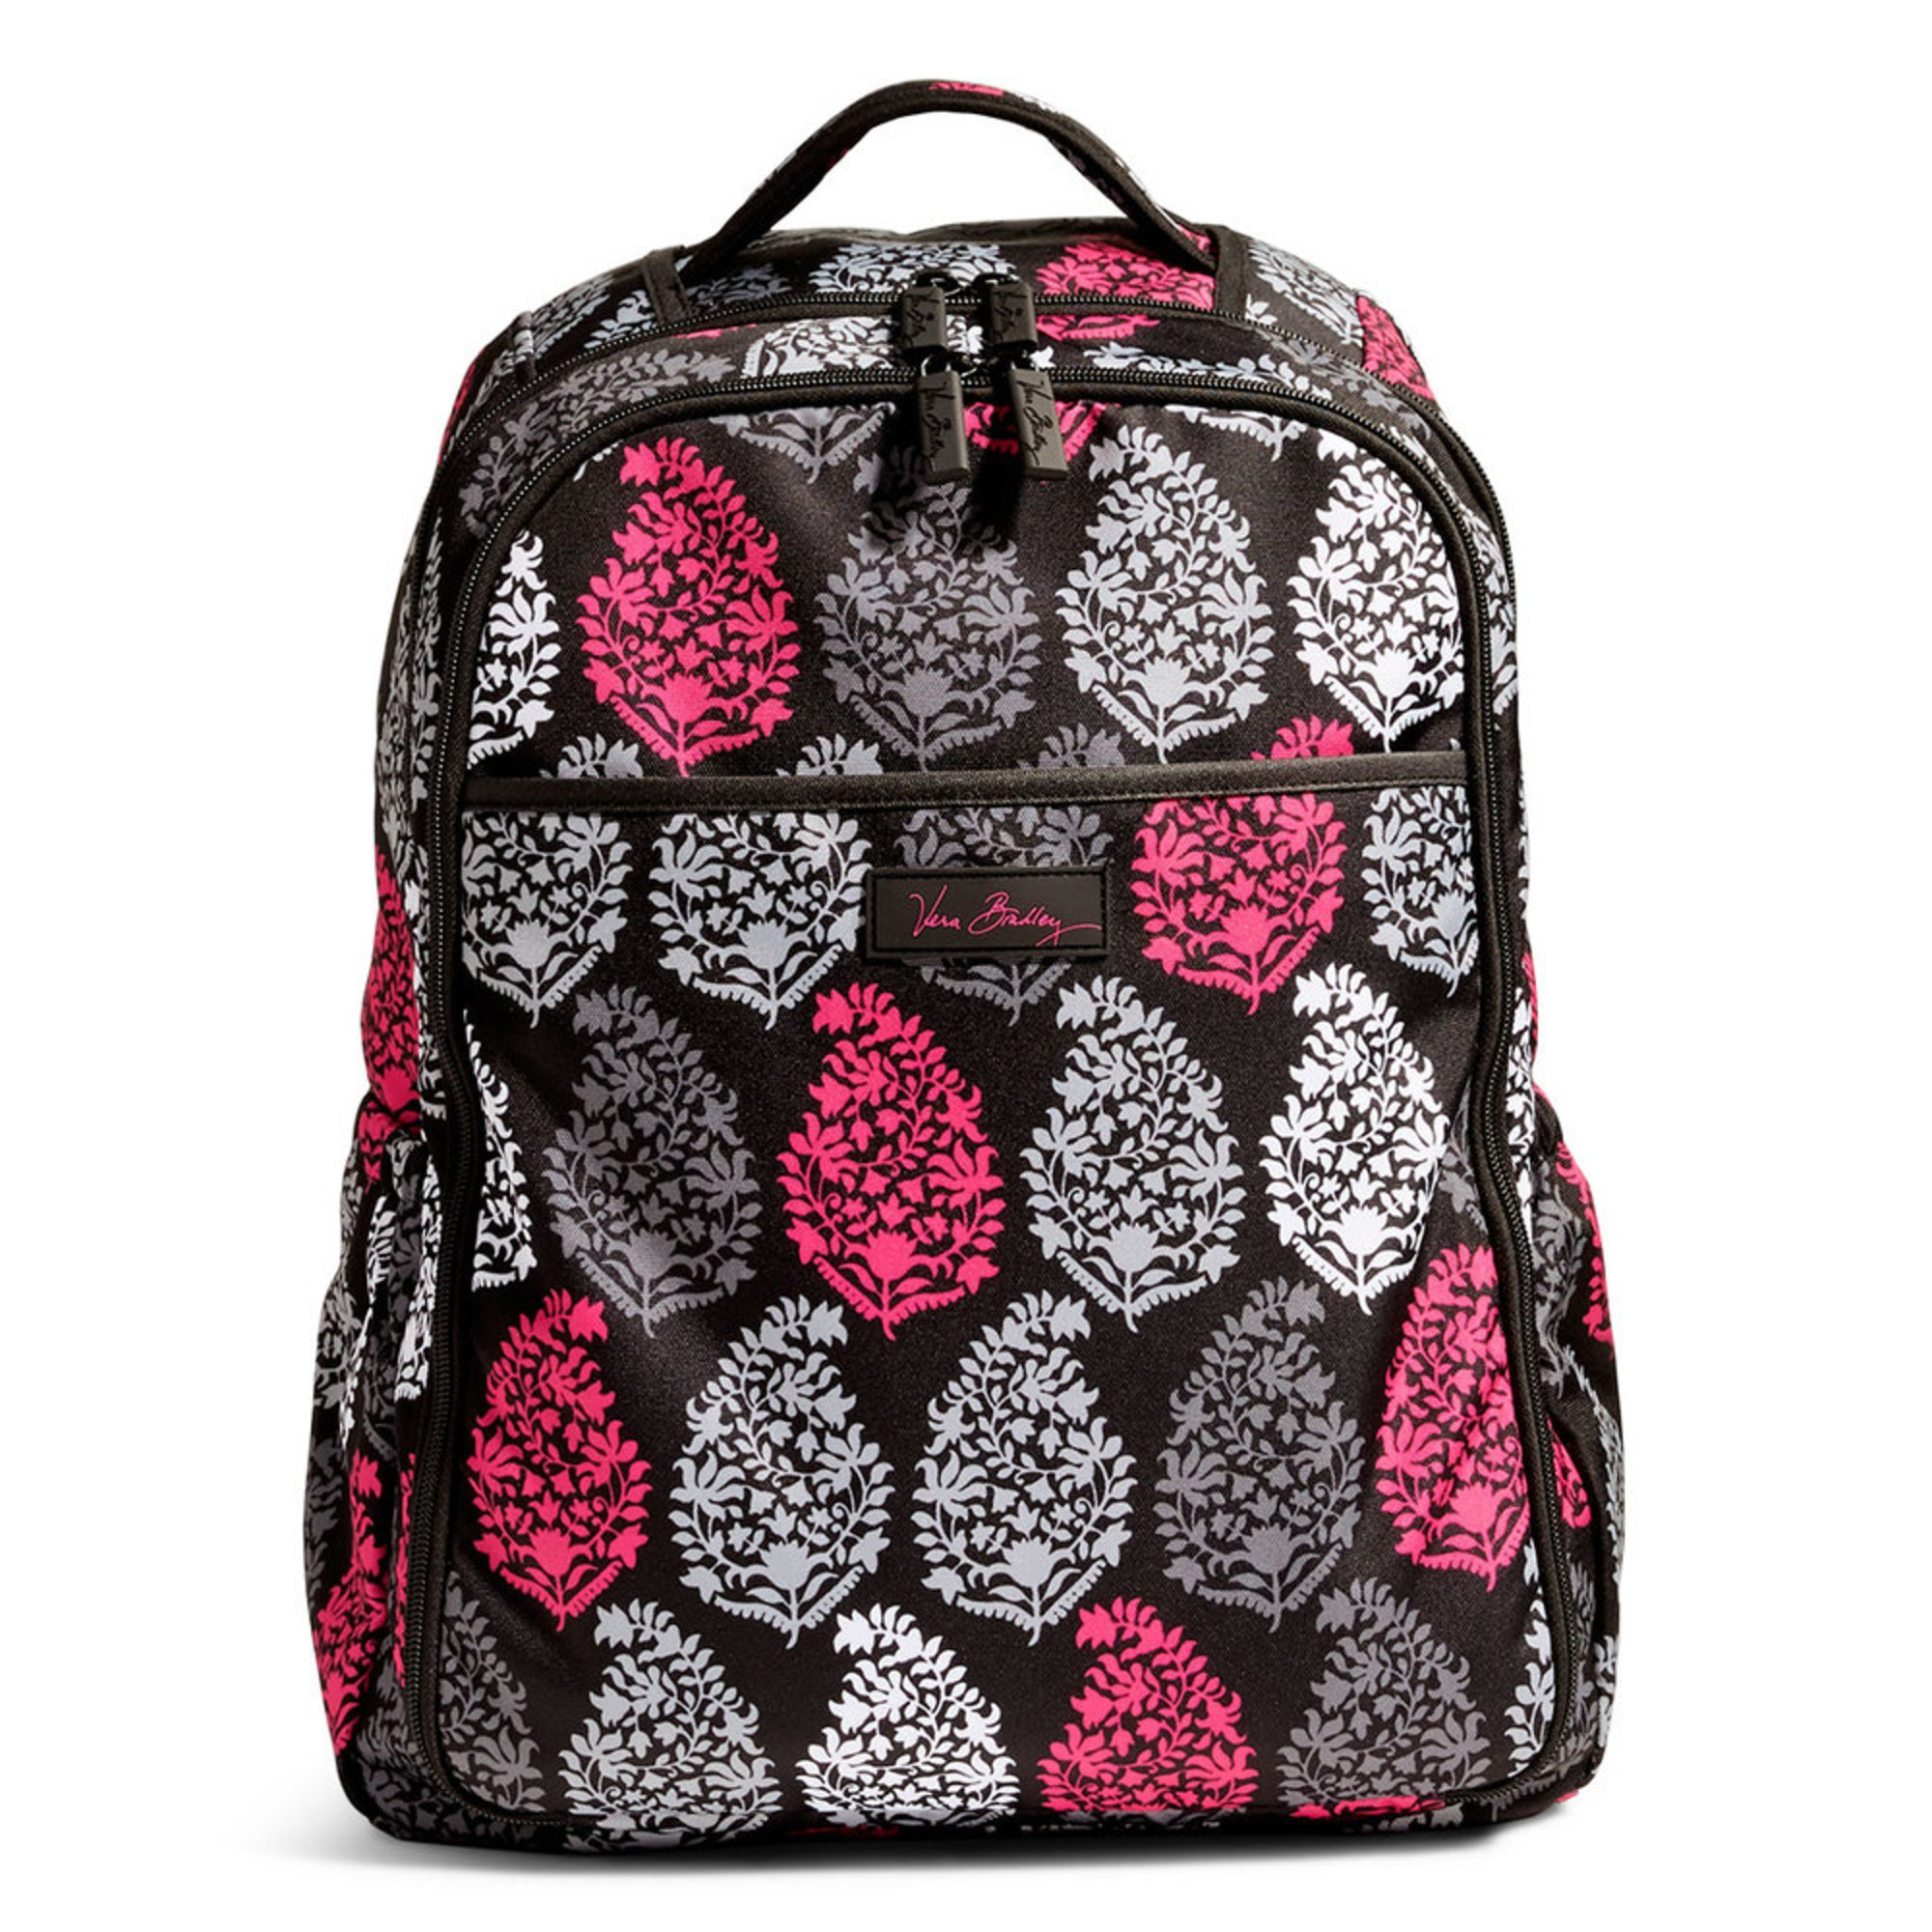 vera bradley backpack diaper bags vera bradley backpack baby bag ebay vera bradley lighten up. Black Bedroom Furniture Sets. Home Design Ideas